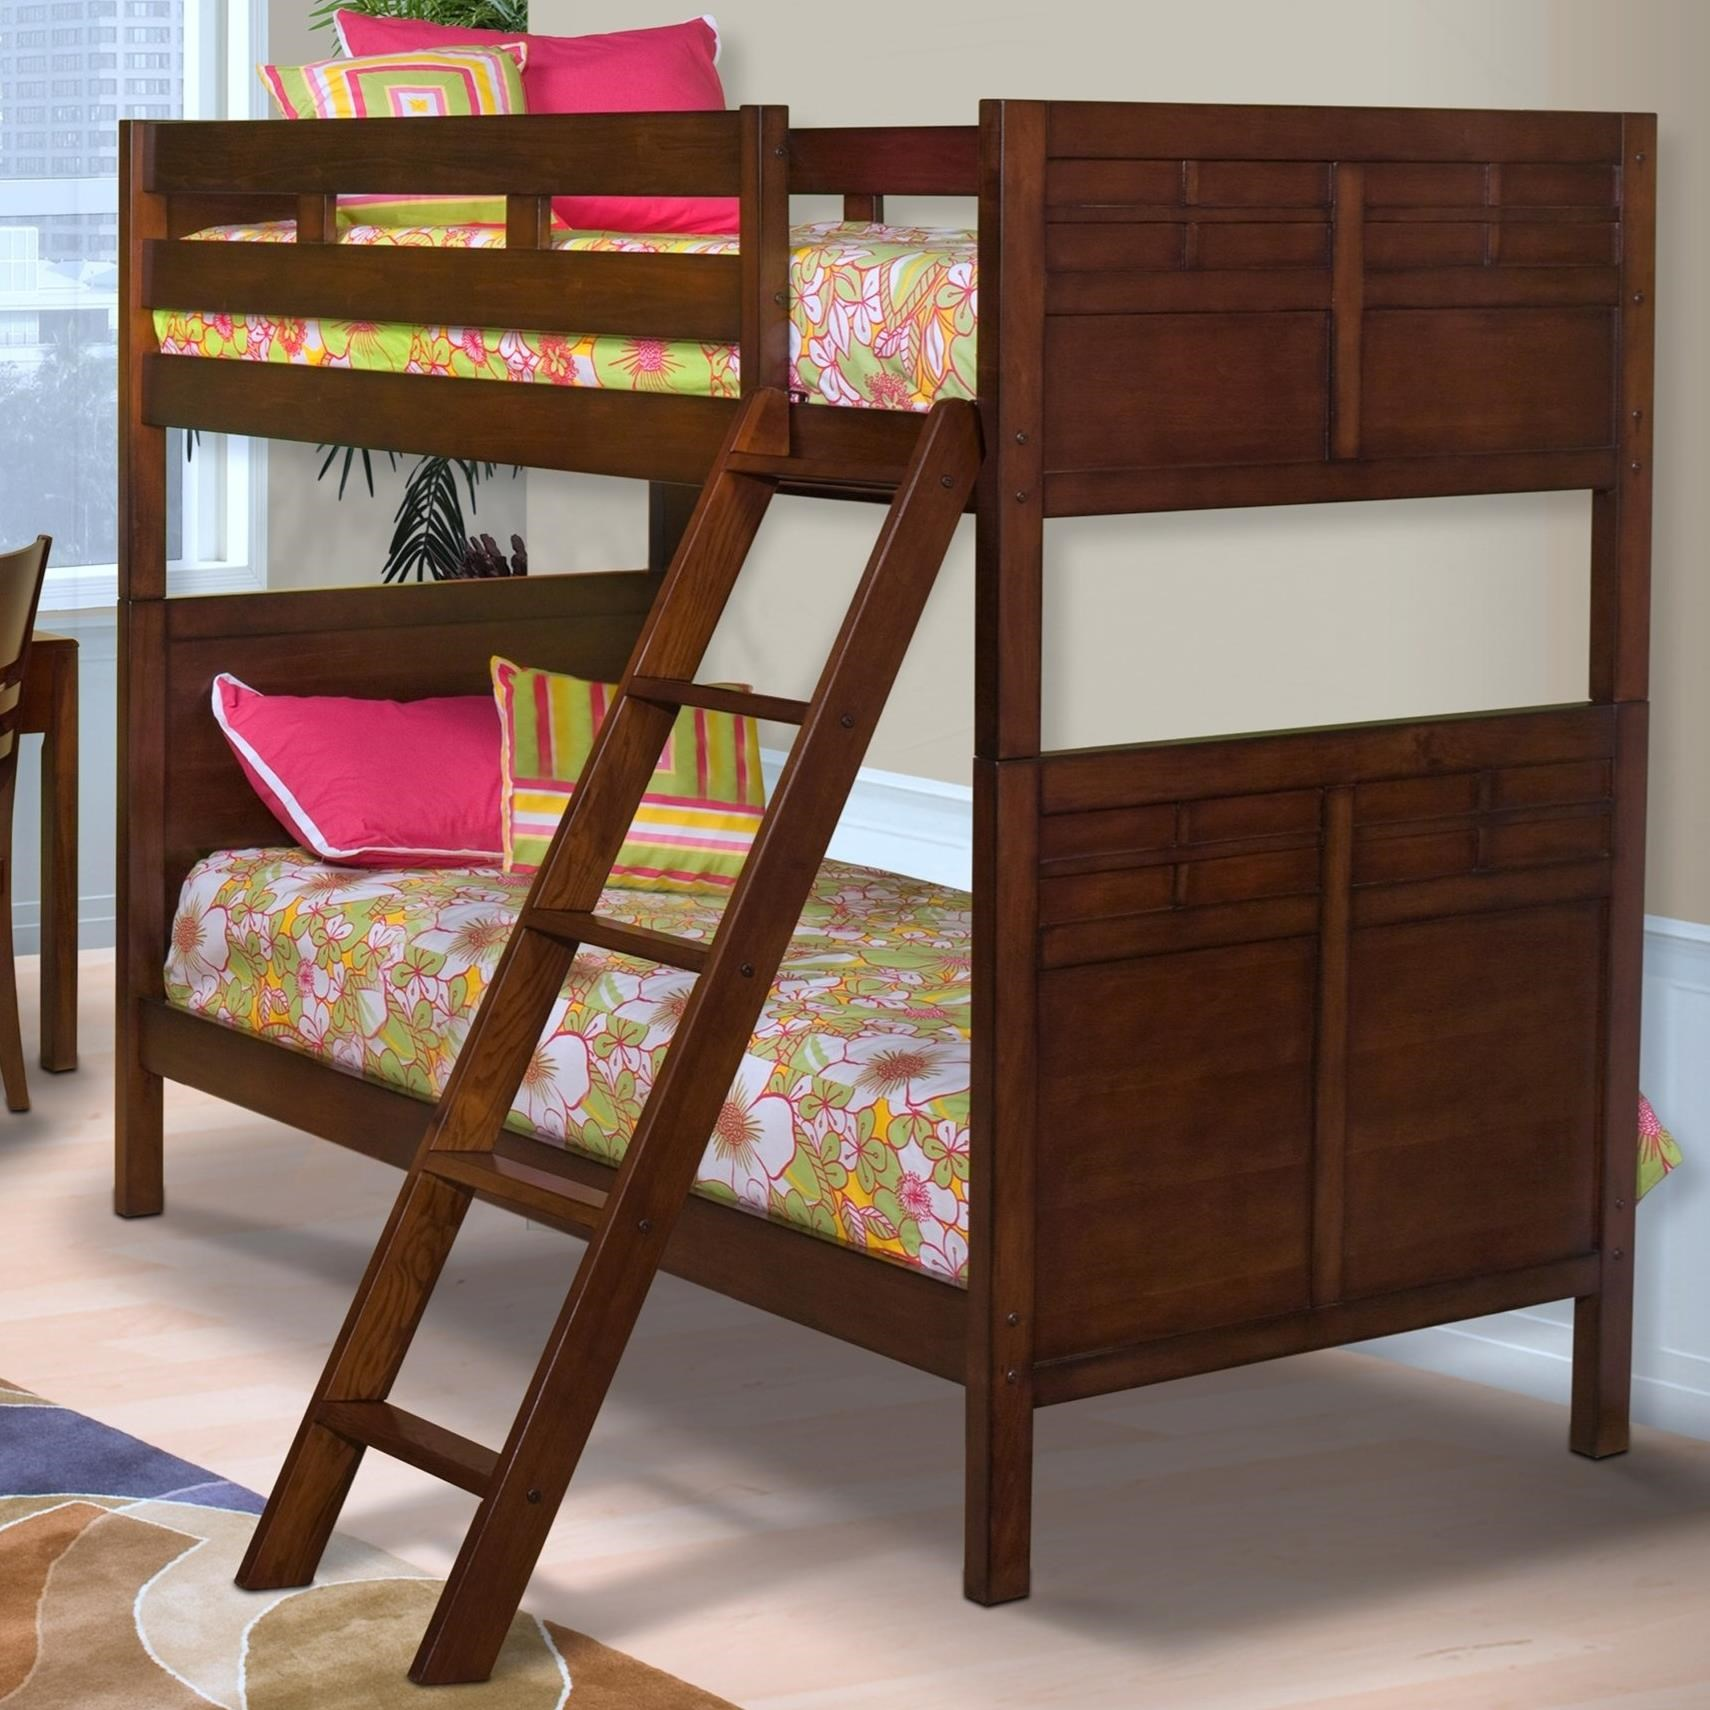 New Classic Kensington Twin/Full Bunk Bed With Panel